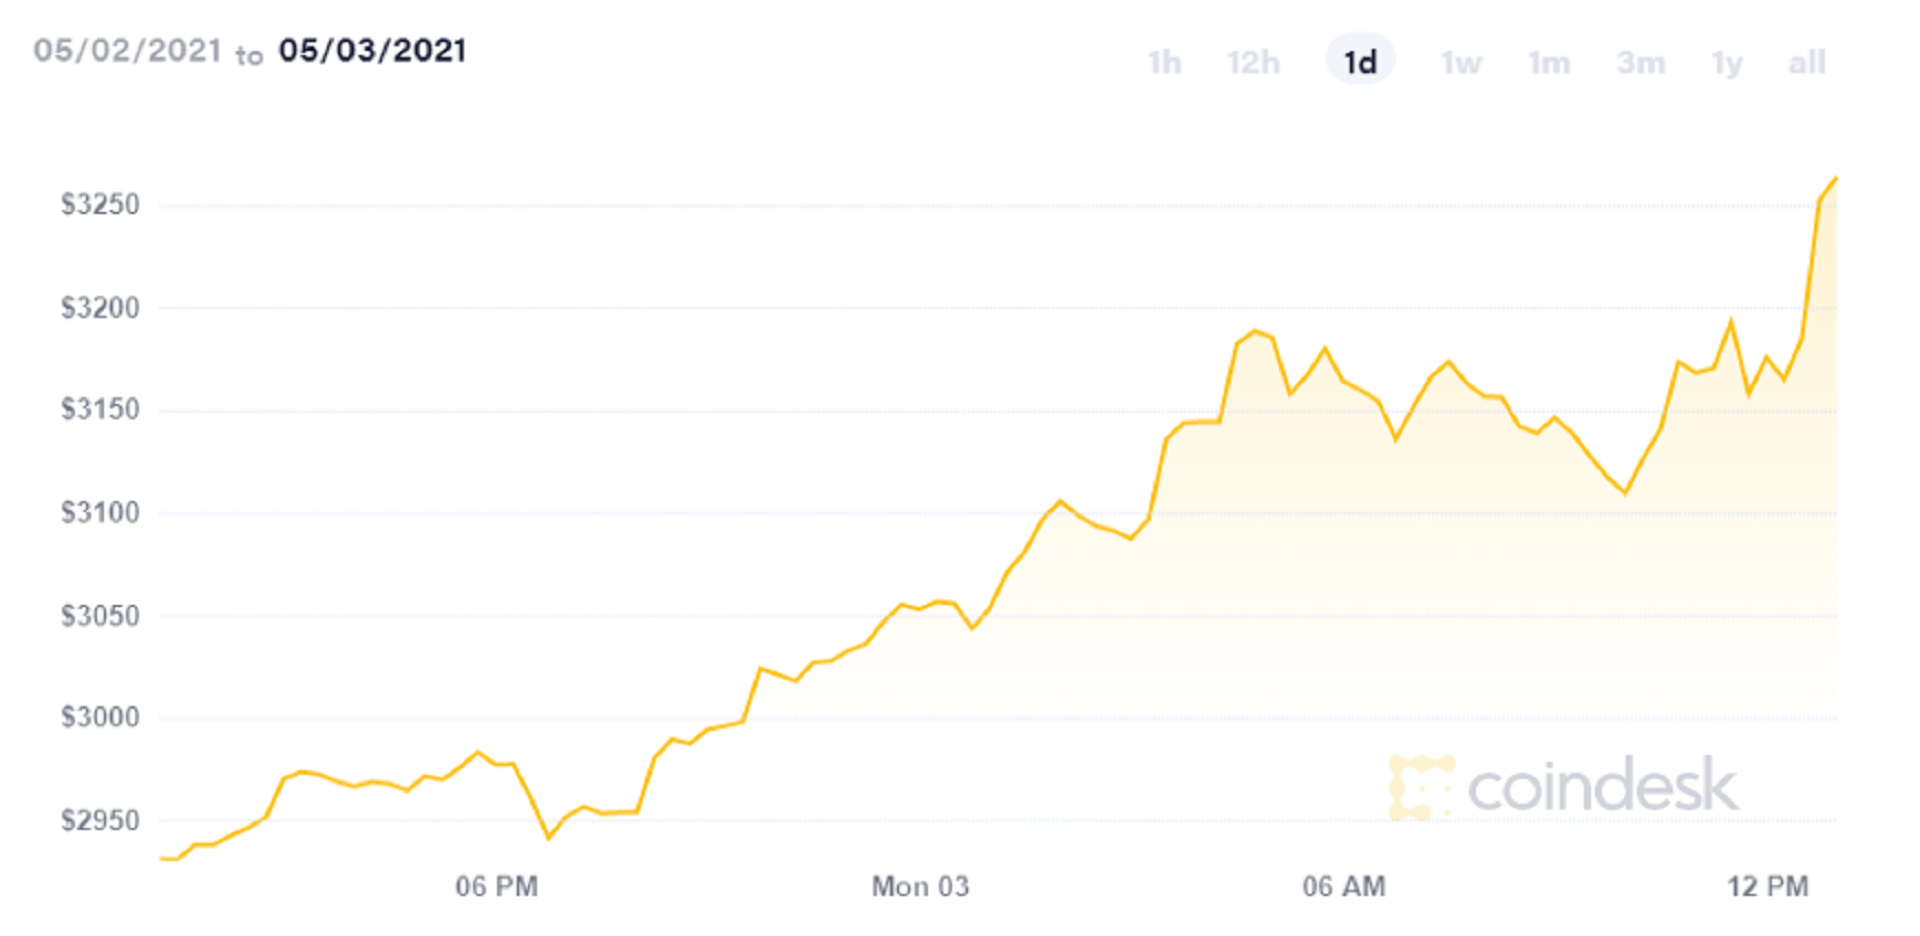 Ethereum (ETH) cryptocurrency hits all-time high above $3300